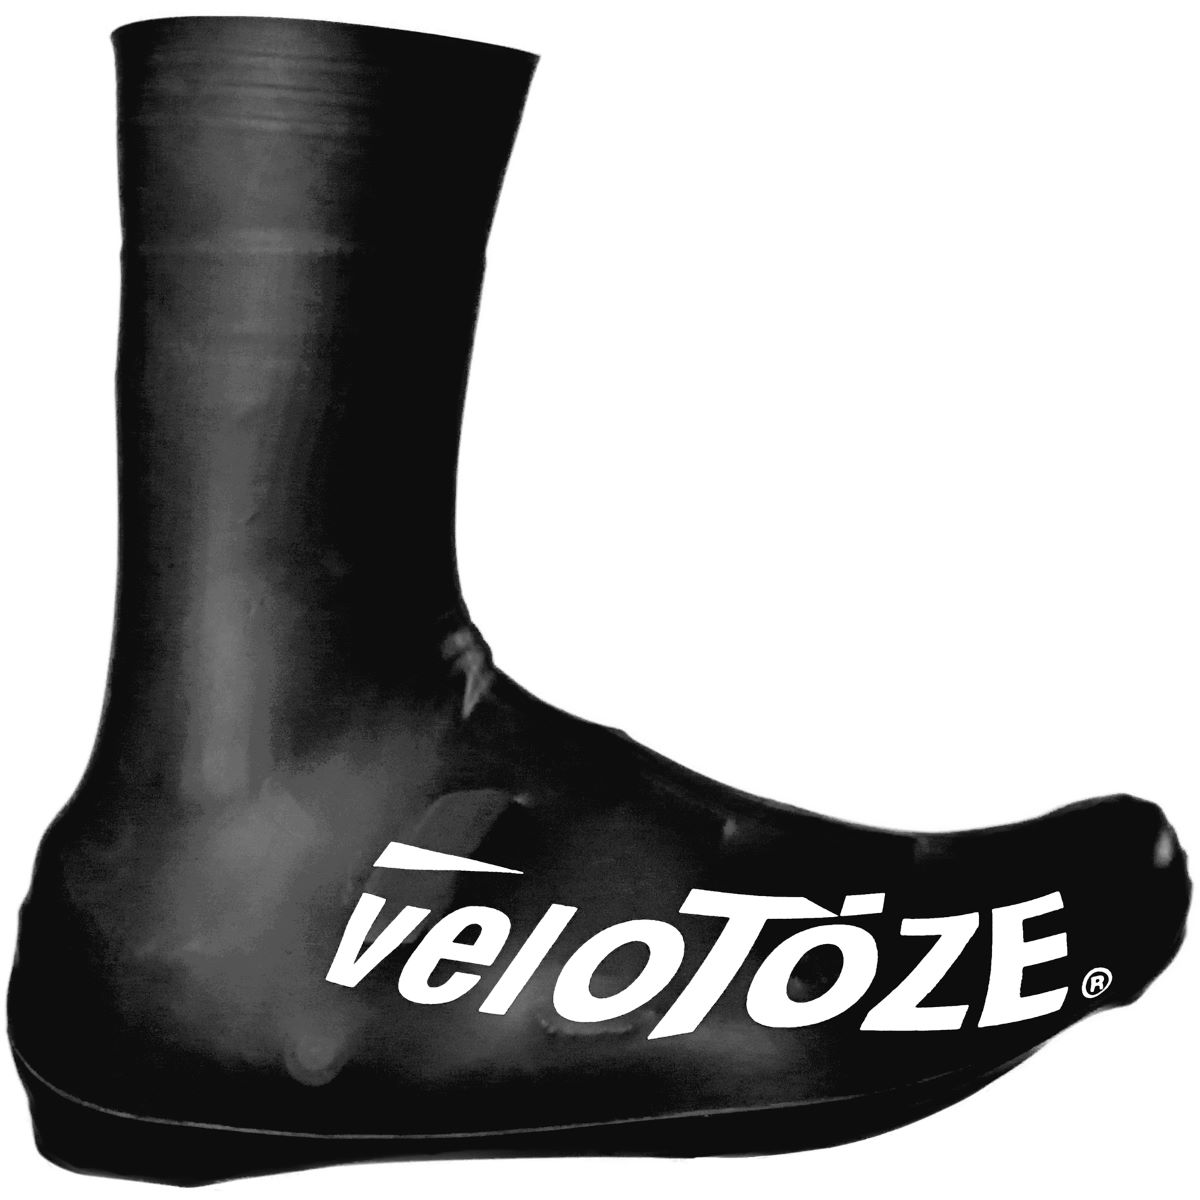 VeloToze VeloToze Tall Shoe Covers 2.0   Overshoes